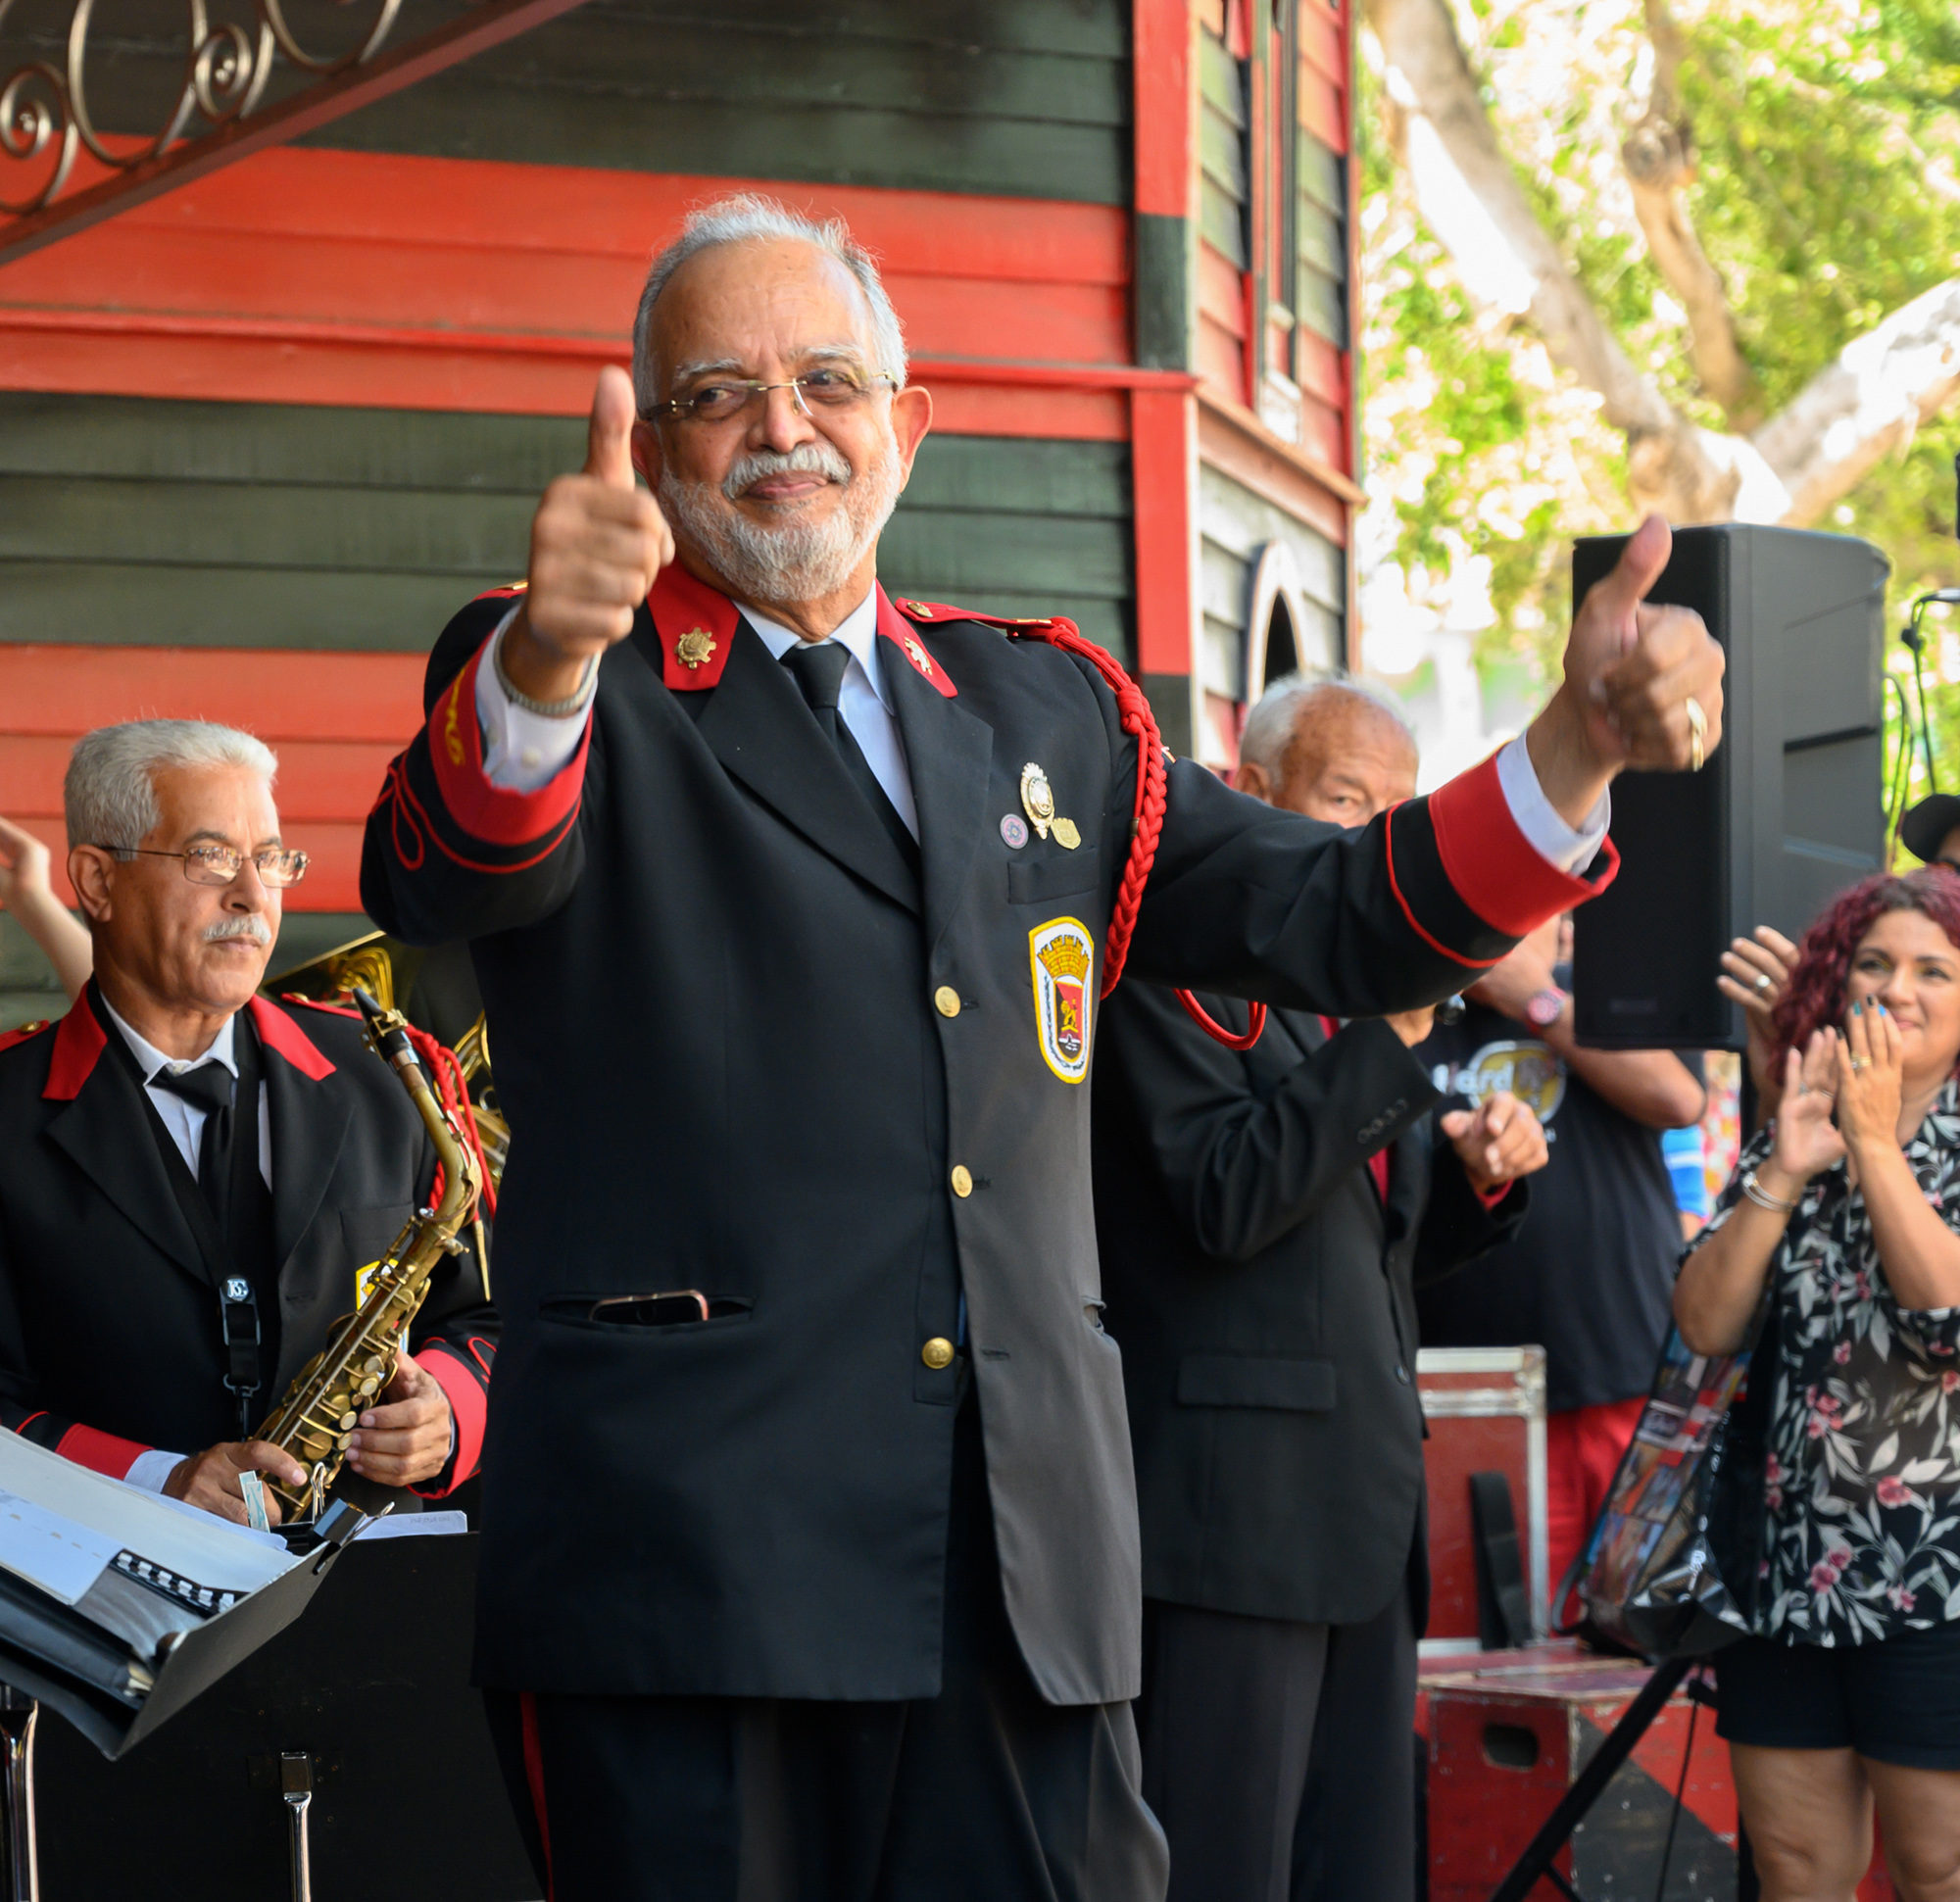 Juan García Germaín, the director of the Ponce Municipal Band, gives a thumbs-up to the audience following their performance at Parque de Bombas during Carnaval Ponceño in Ponce, Puerto Rico on Sunday, March 3, 2019. Photo by Sydney Herdle.